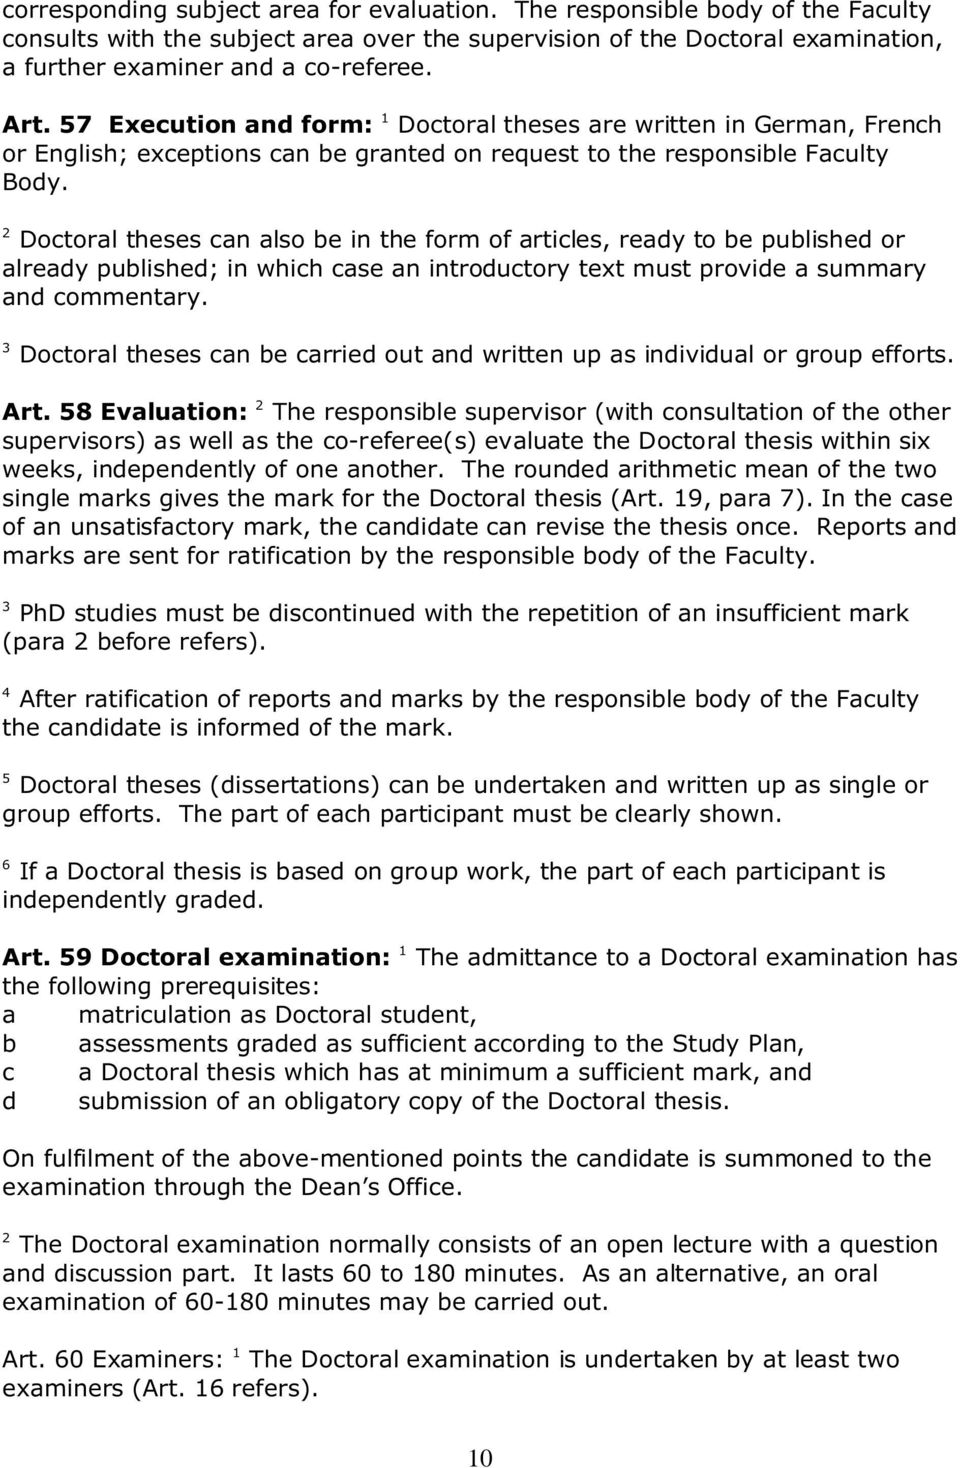 Doctoral theses can also be in the form of articles, ready to be published or already published; in which case an introductory text must provide a summary and commentary.